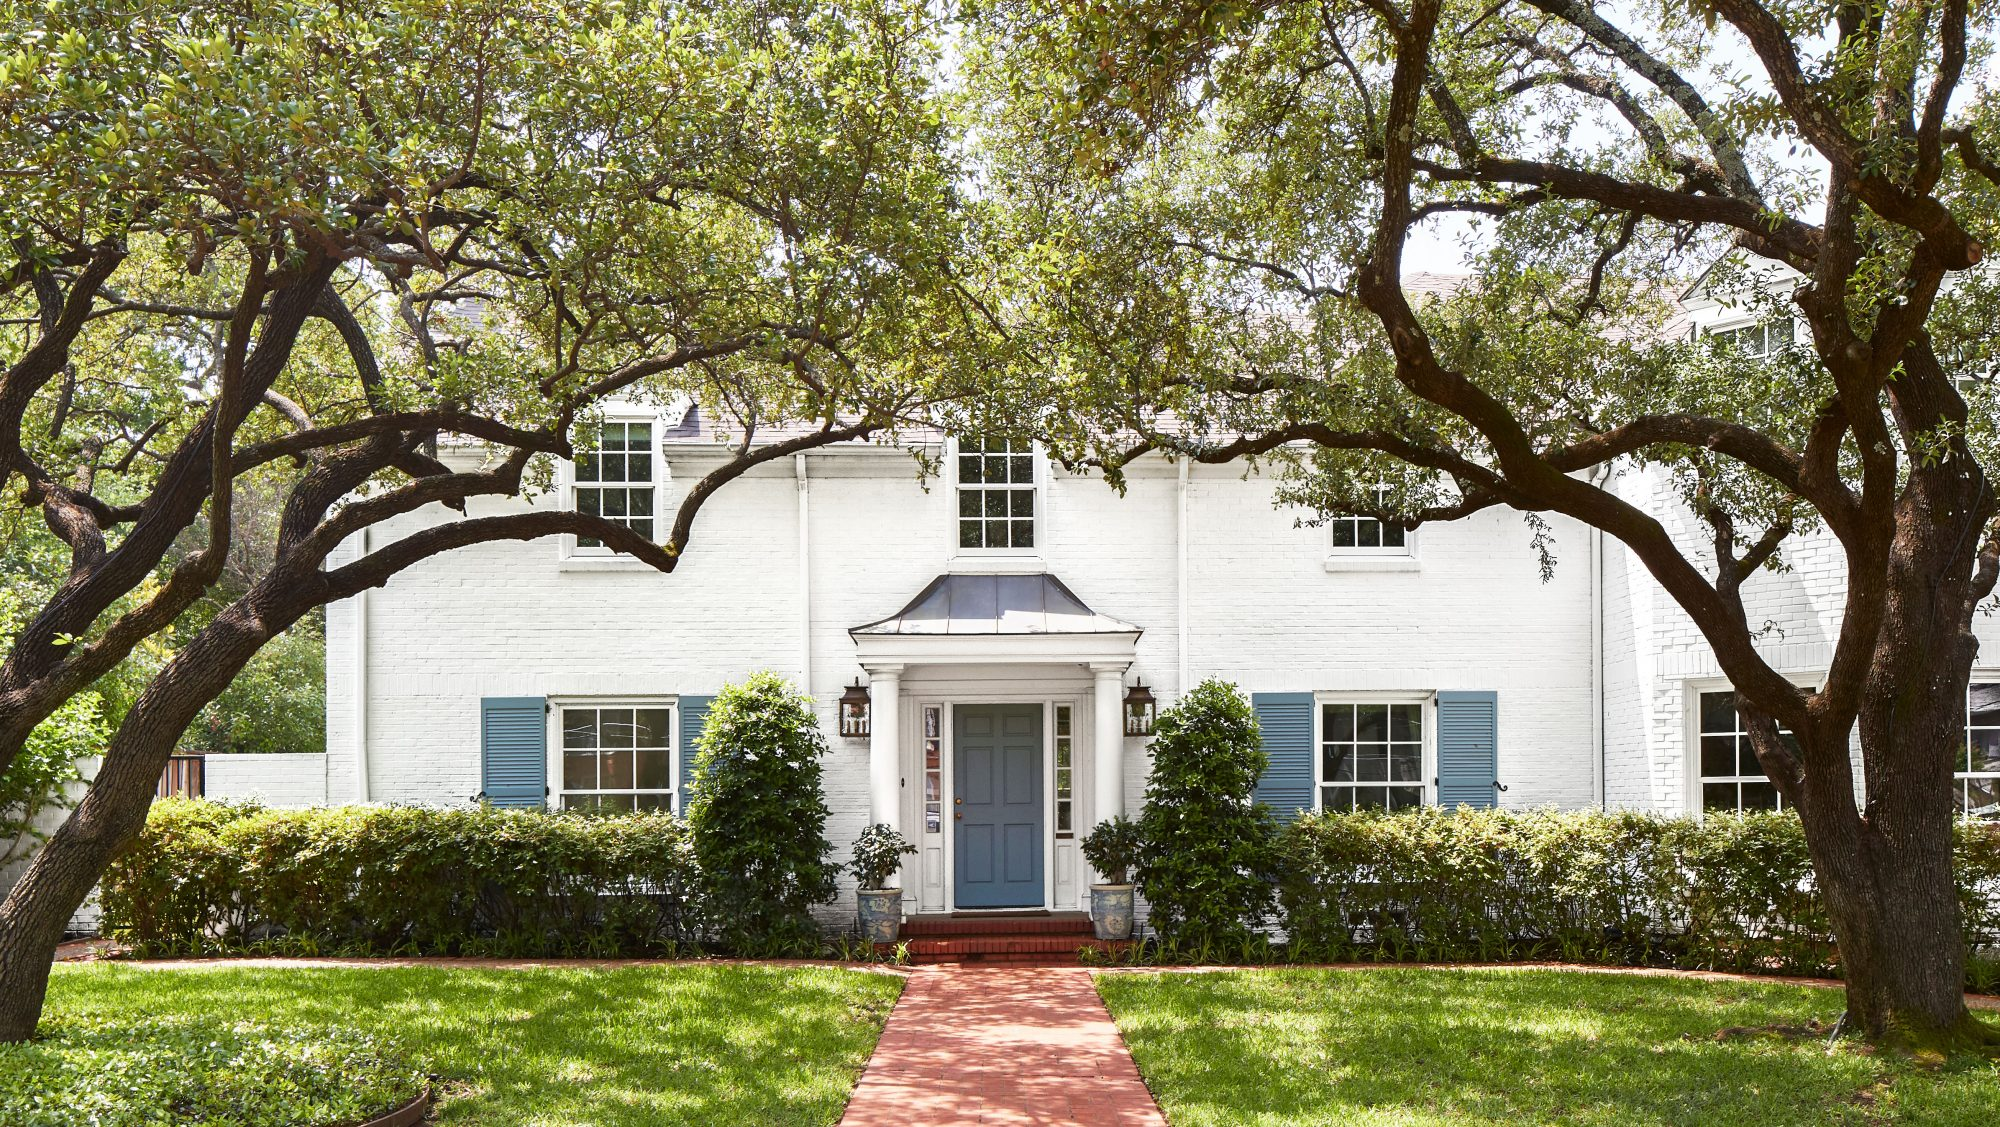 Amy Berry Designed Dallas Home with White Exterior with Blue Shutters